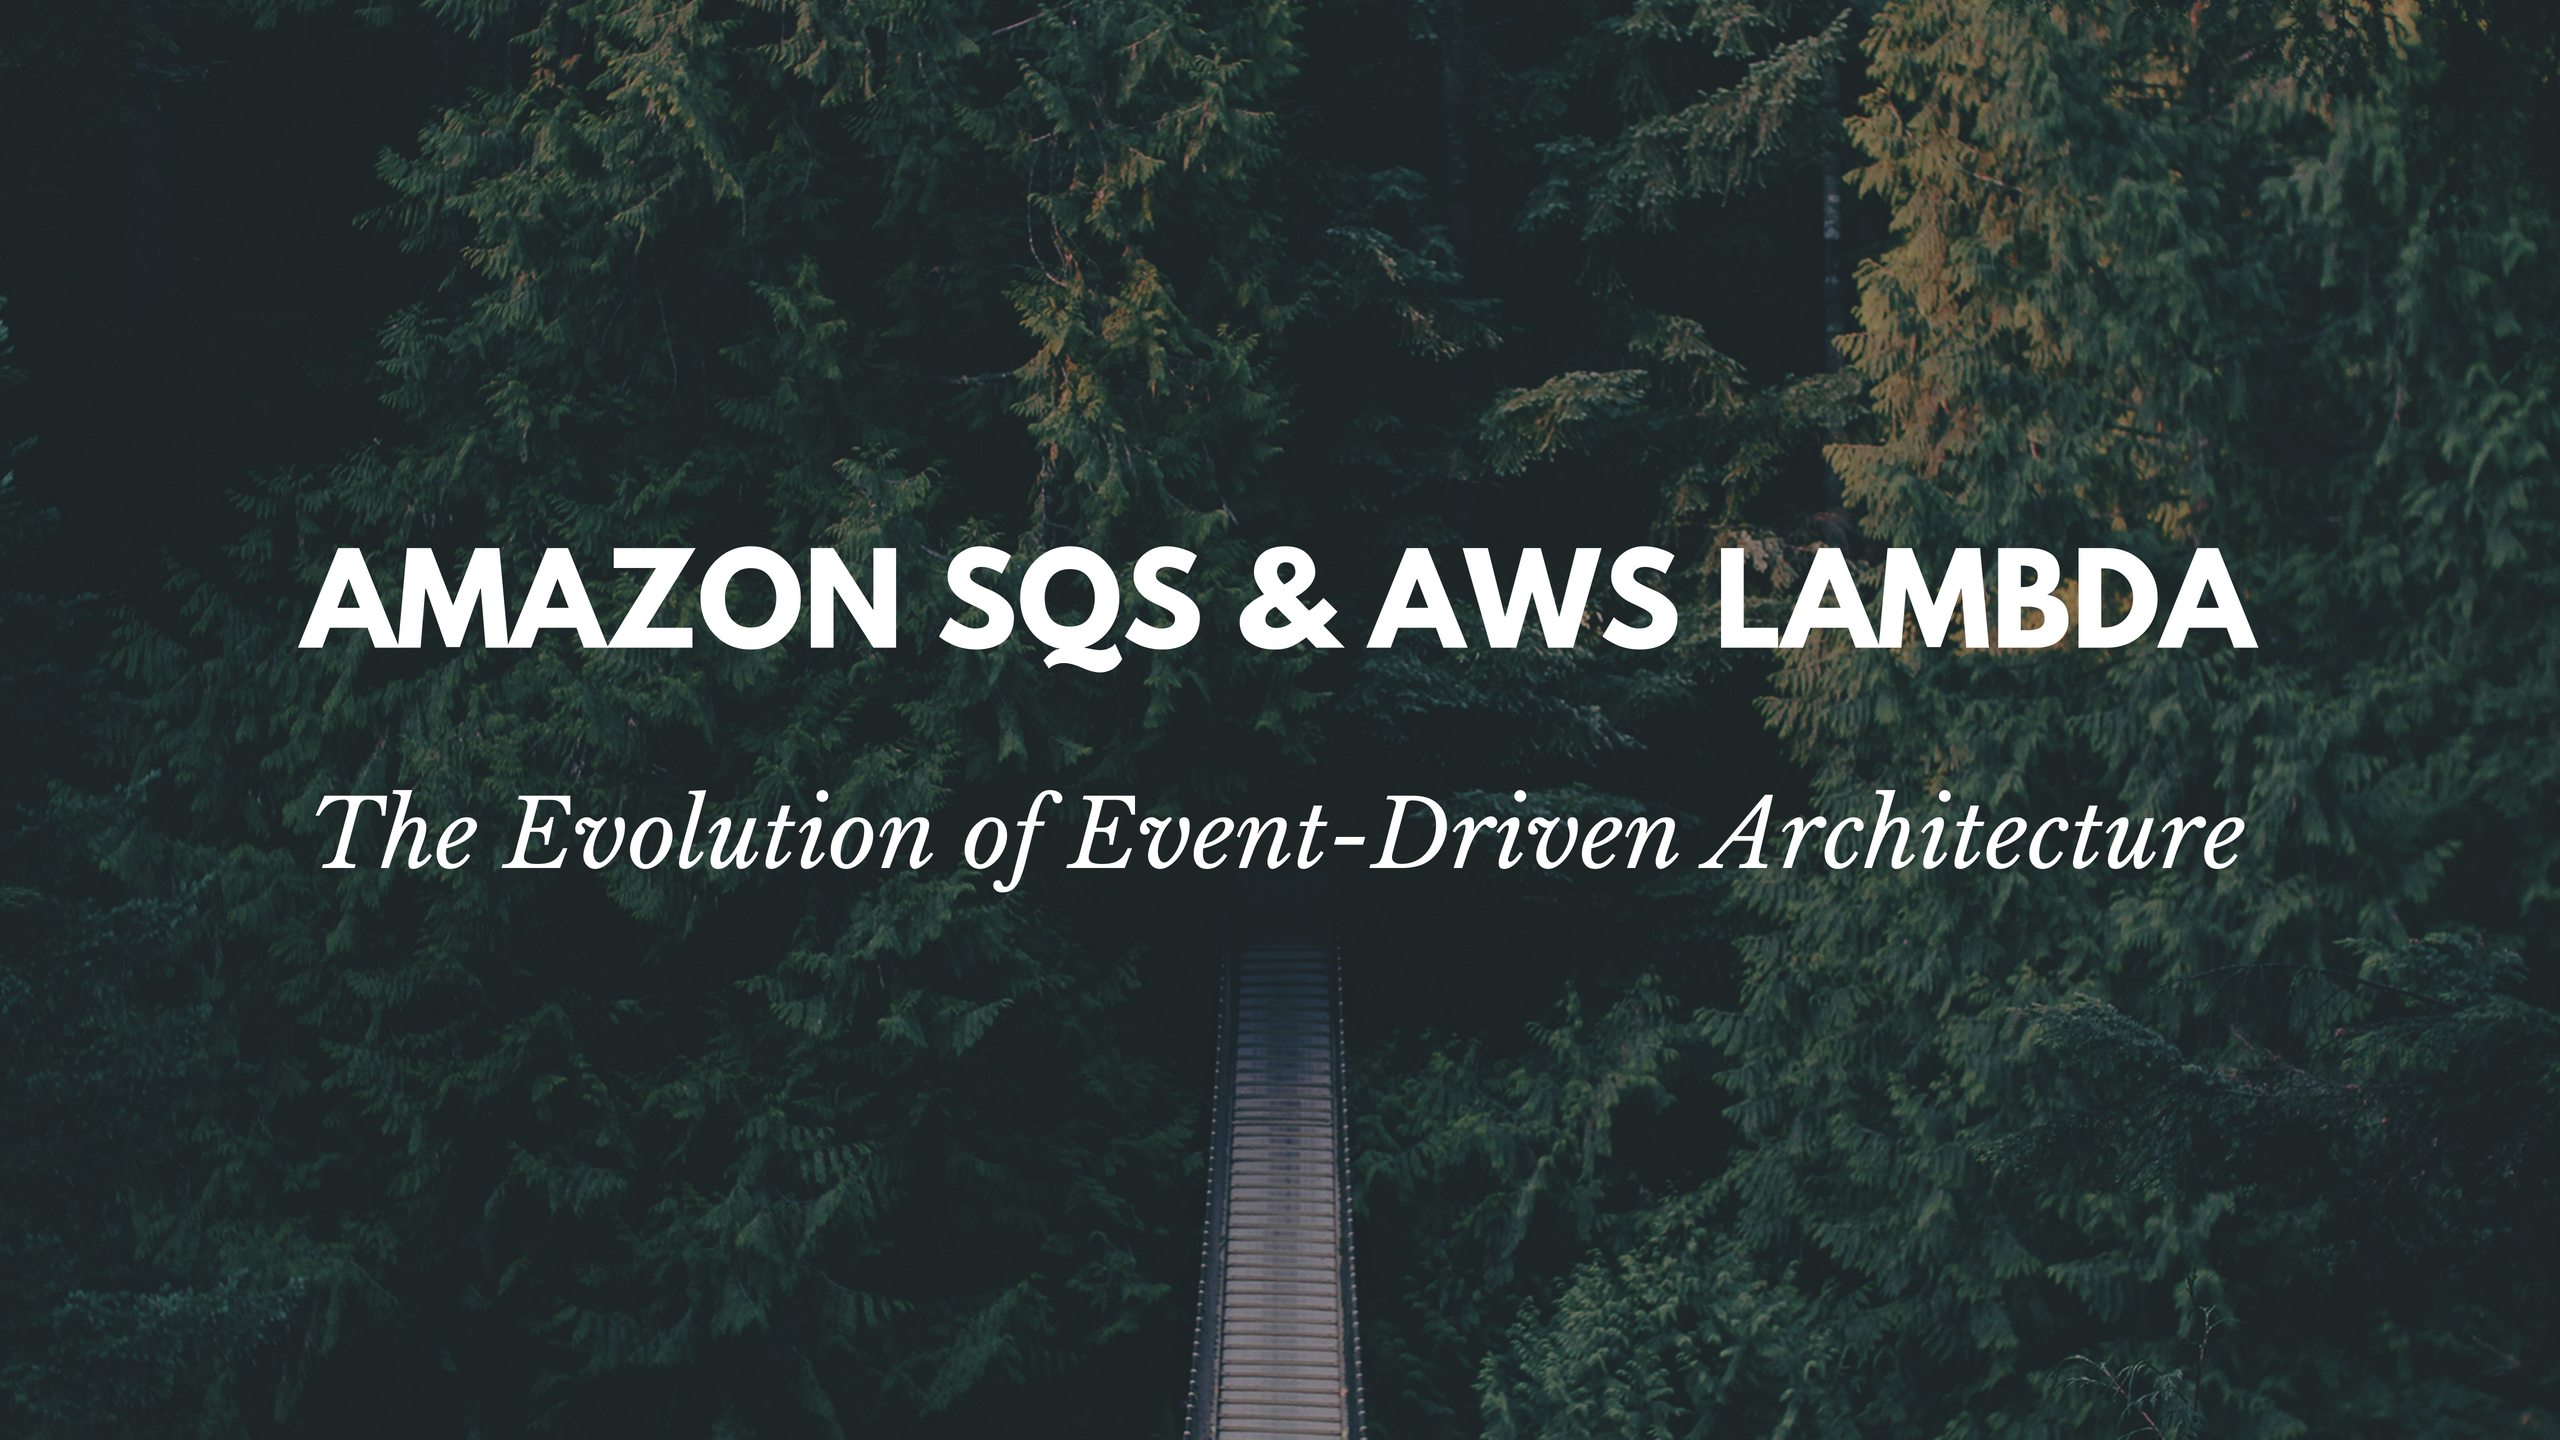 Event-driven architecture with Amazon SQS and AWS Lambda